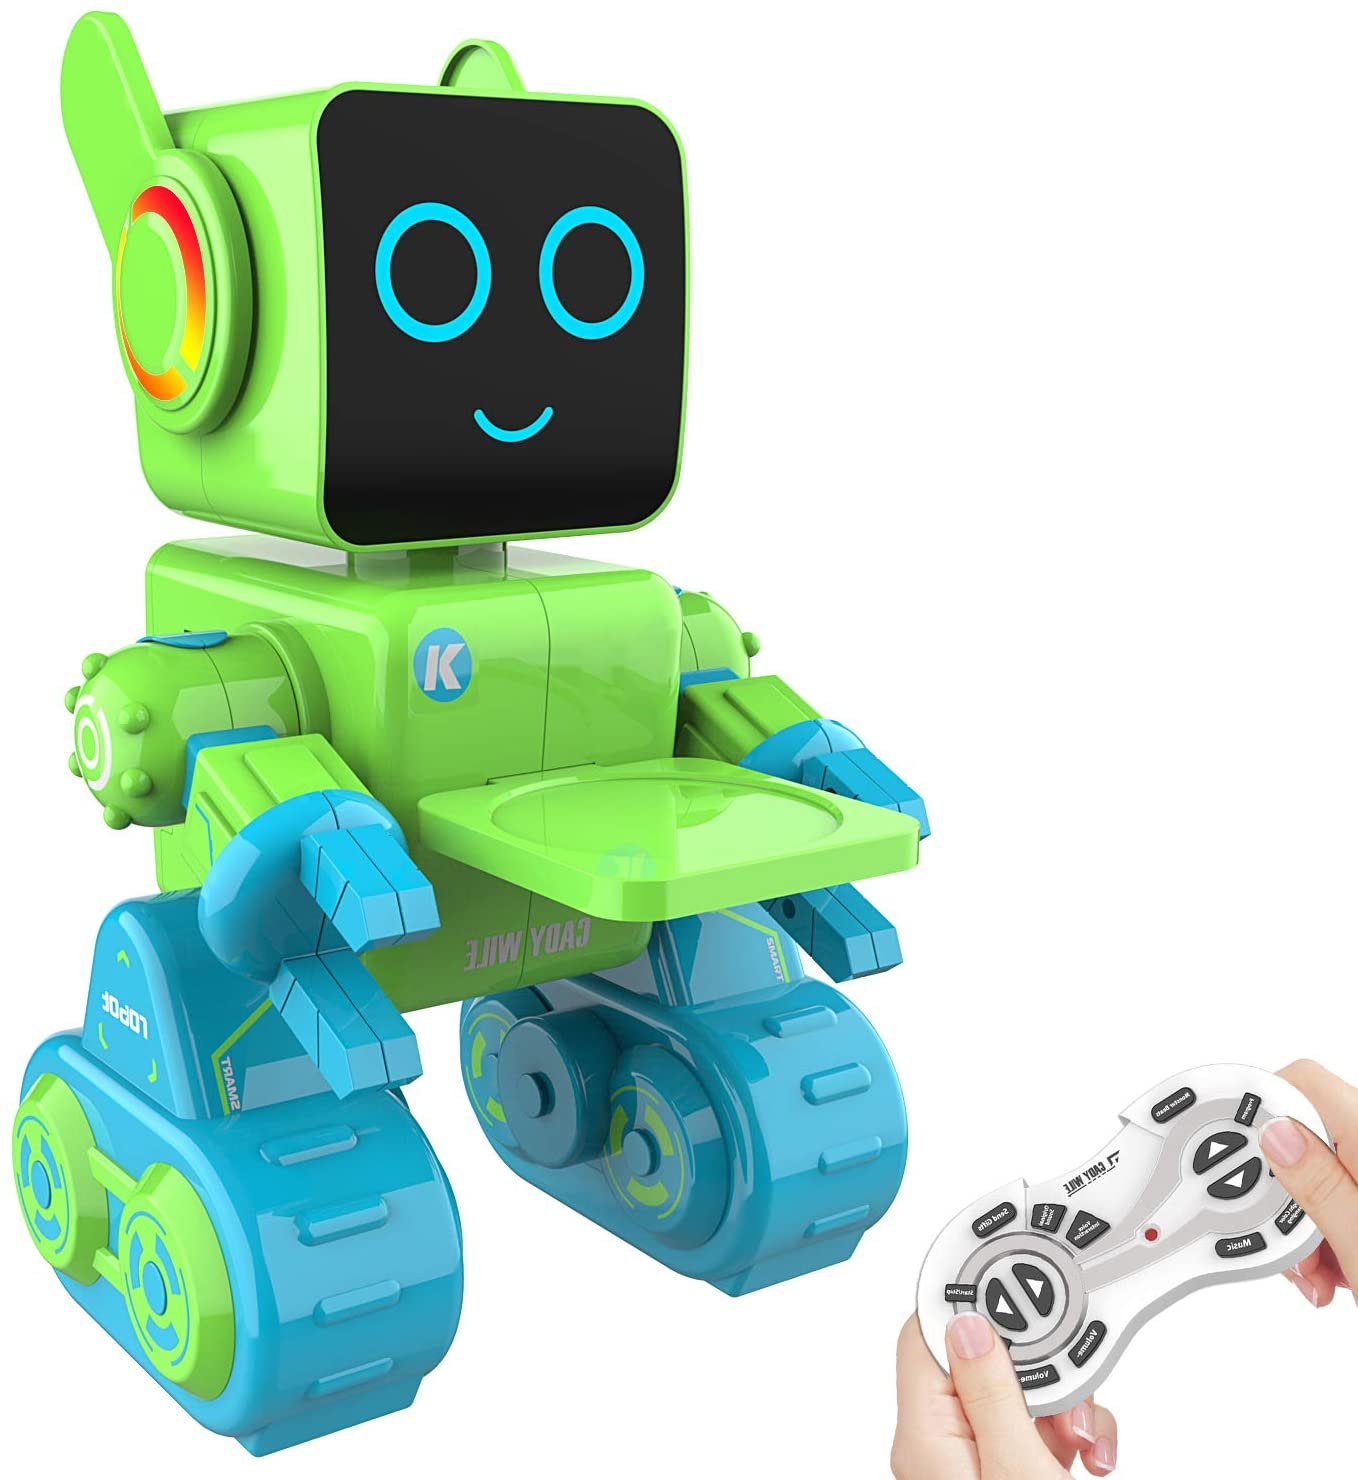 Aukfa Remote Control Robot for Kids, Intelligent Programmable Robotic Dancing, Singing, Talking, Voice Recording, Built-in Coin Bank, Gesture Sensing Rechargeable RC Toy for Boys, Girl